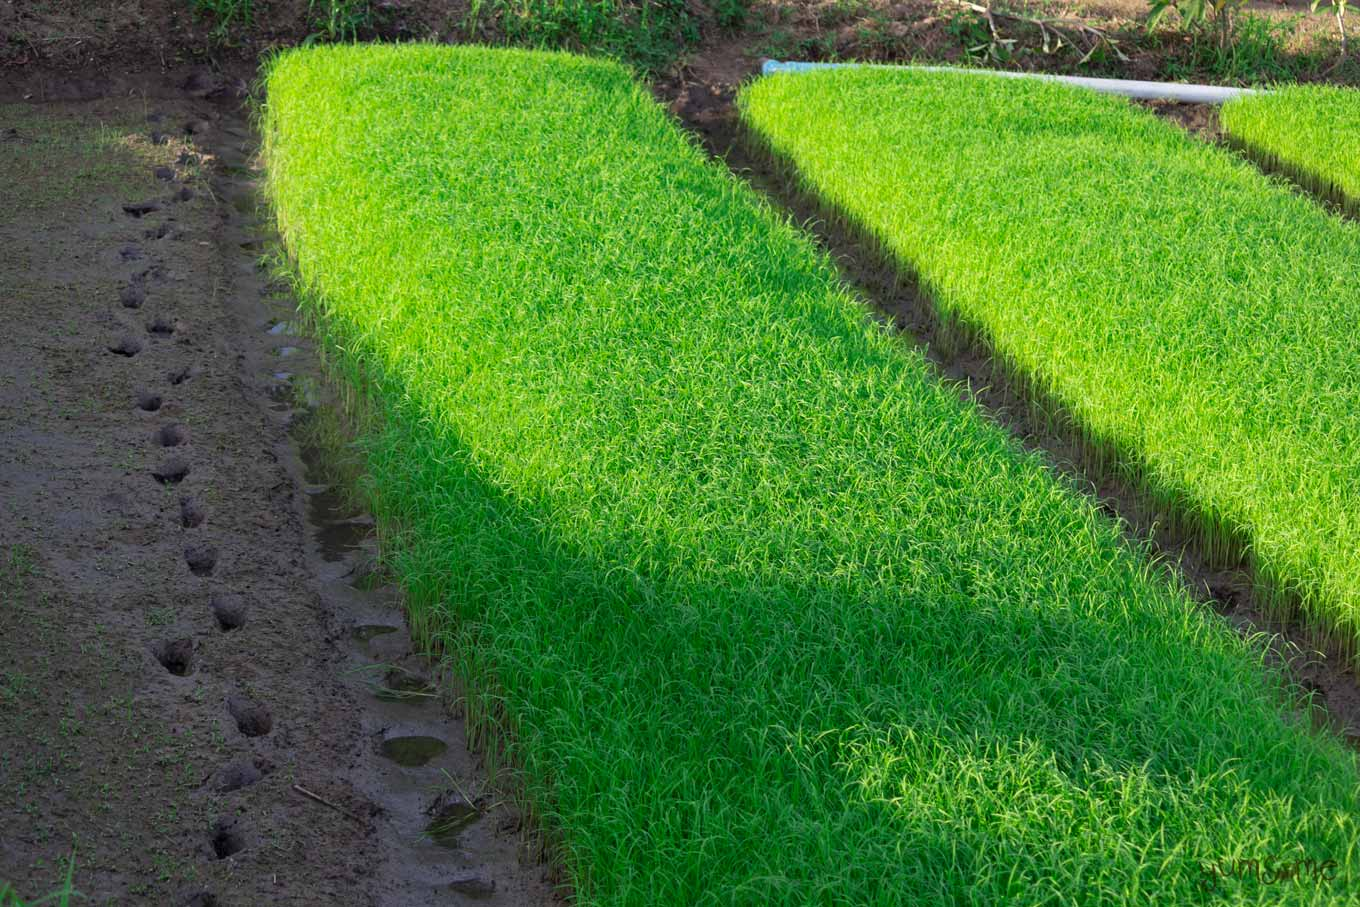 A verdant rice field with deep footprints in the mud along the side.